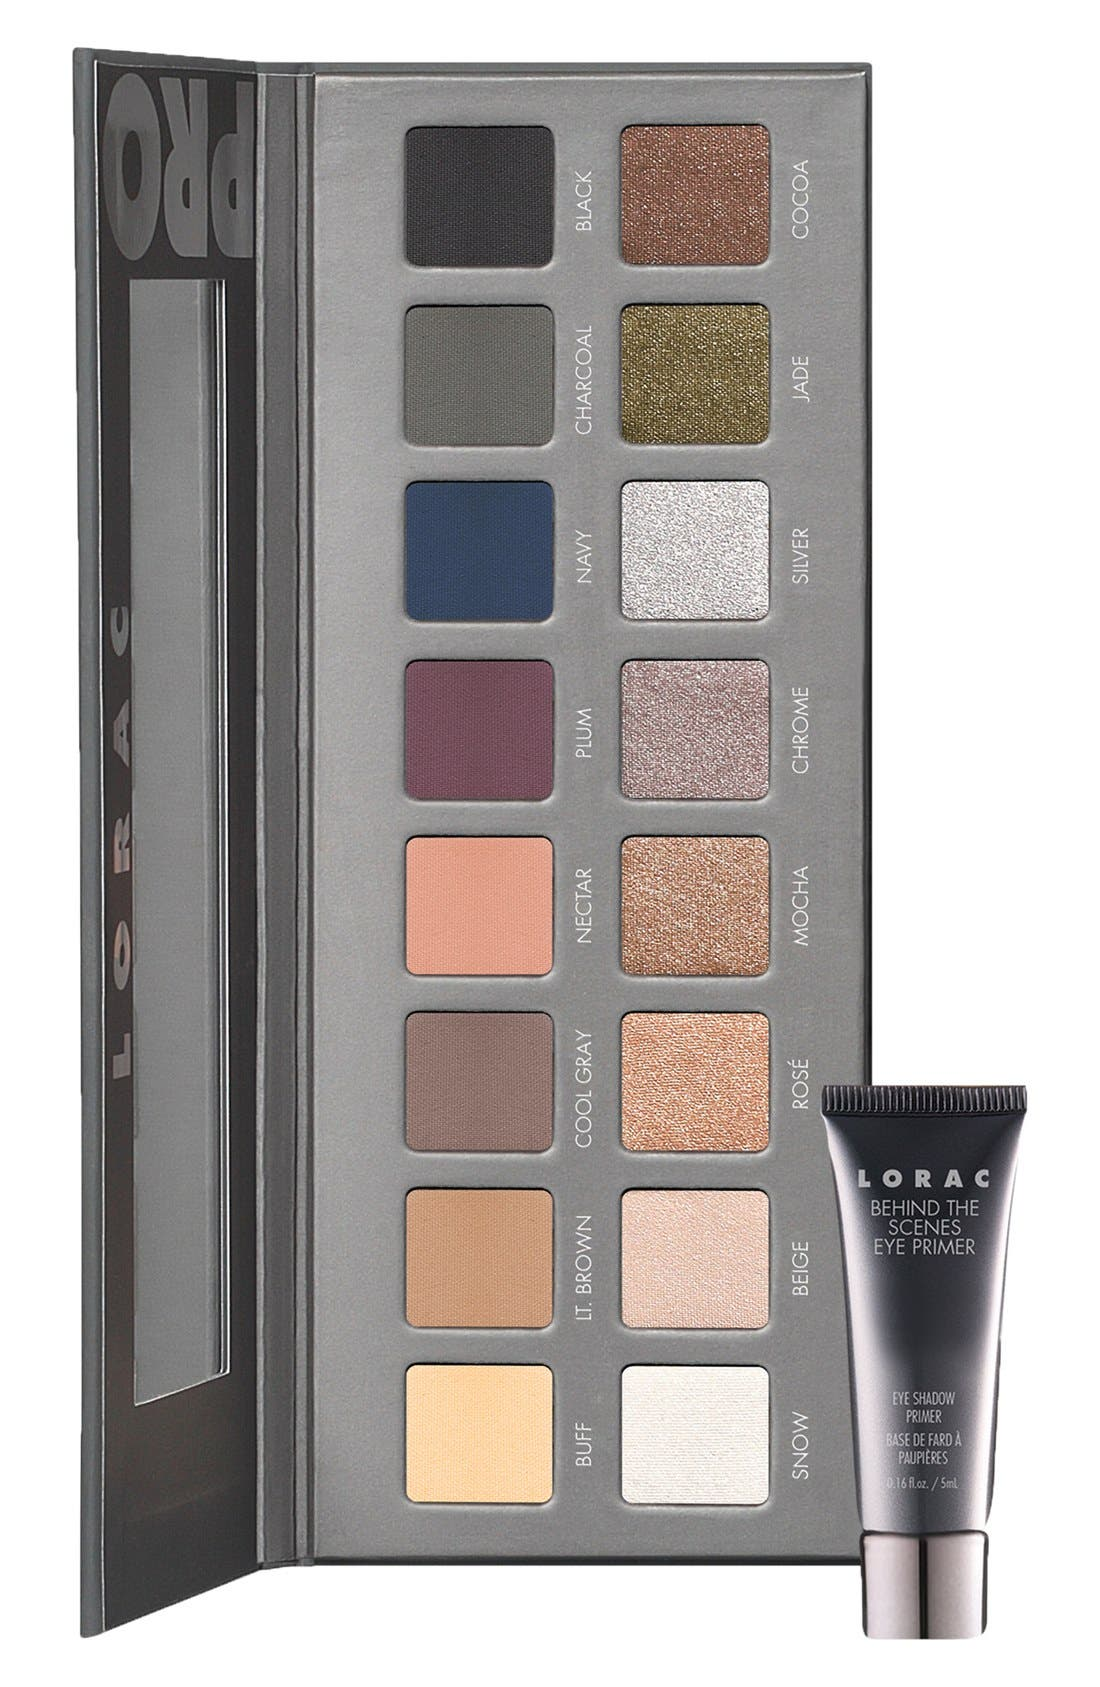 'PRO' Palette 2,                             Main thumbnail 1, color,                             NO COLOR